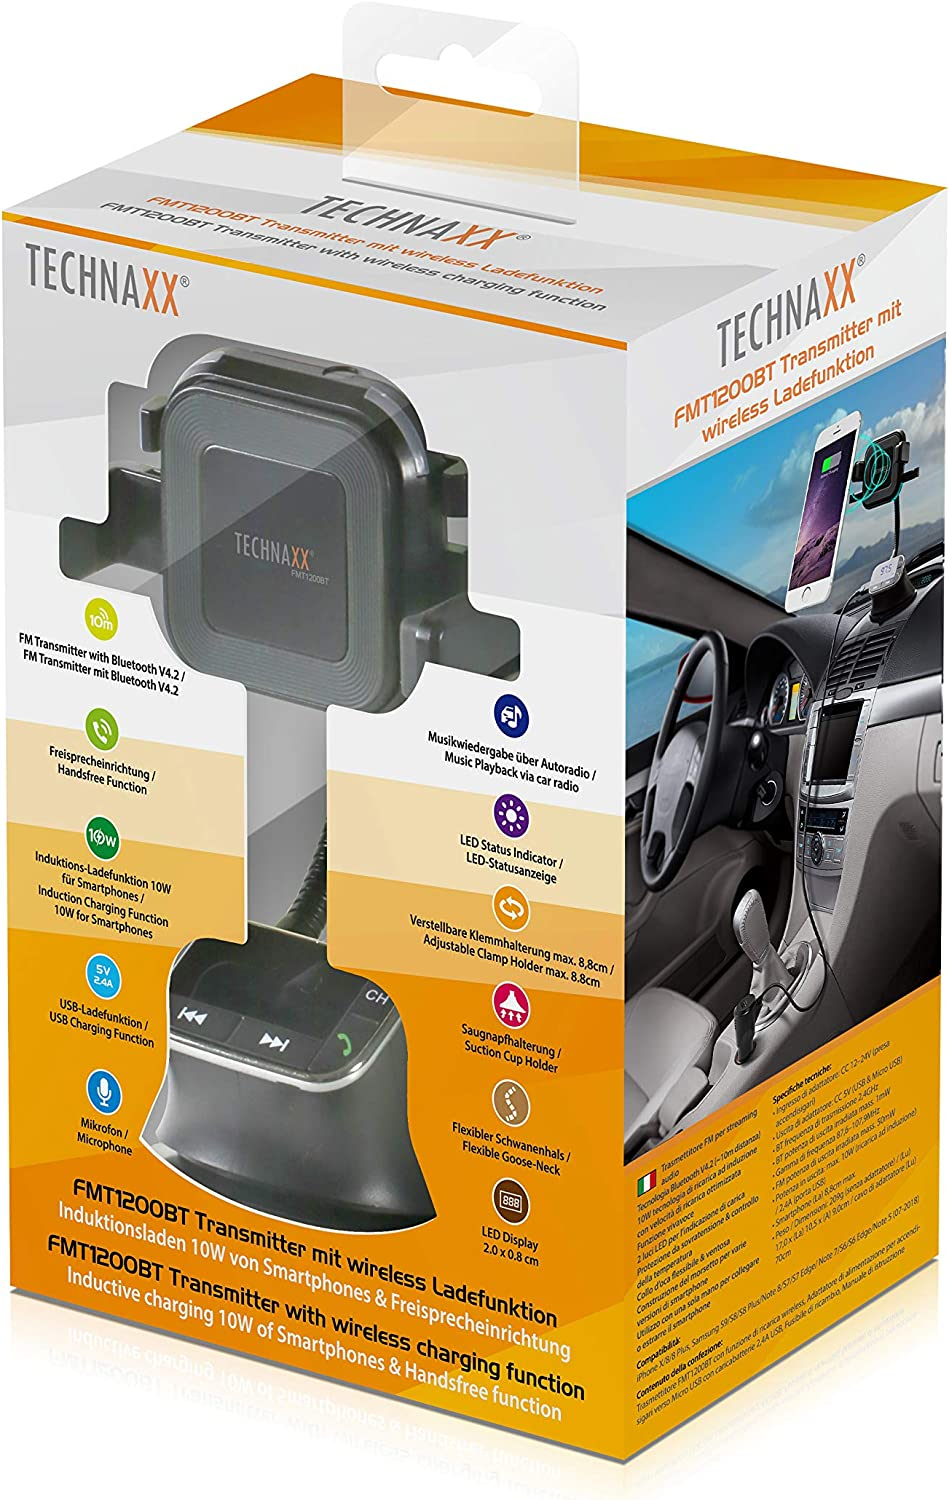 Technaxx FMT1200BT Transmitter with Wireless Charging Function